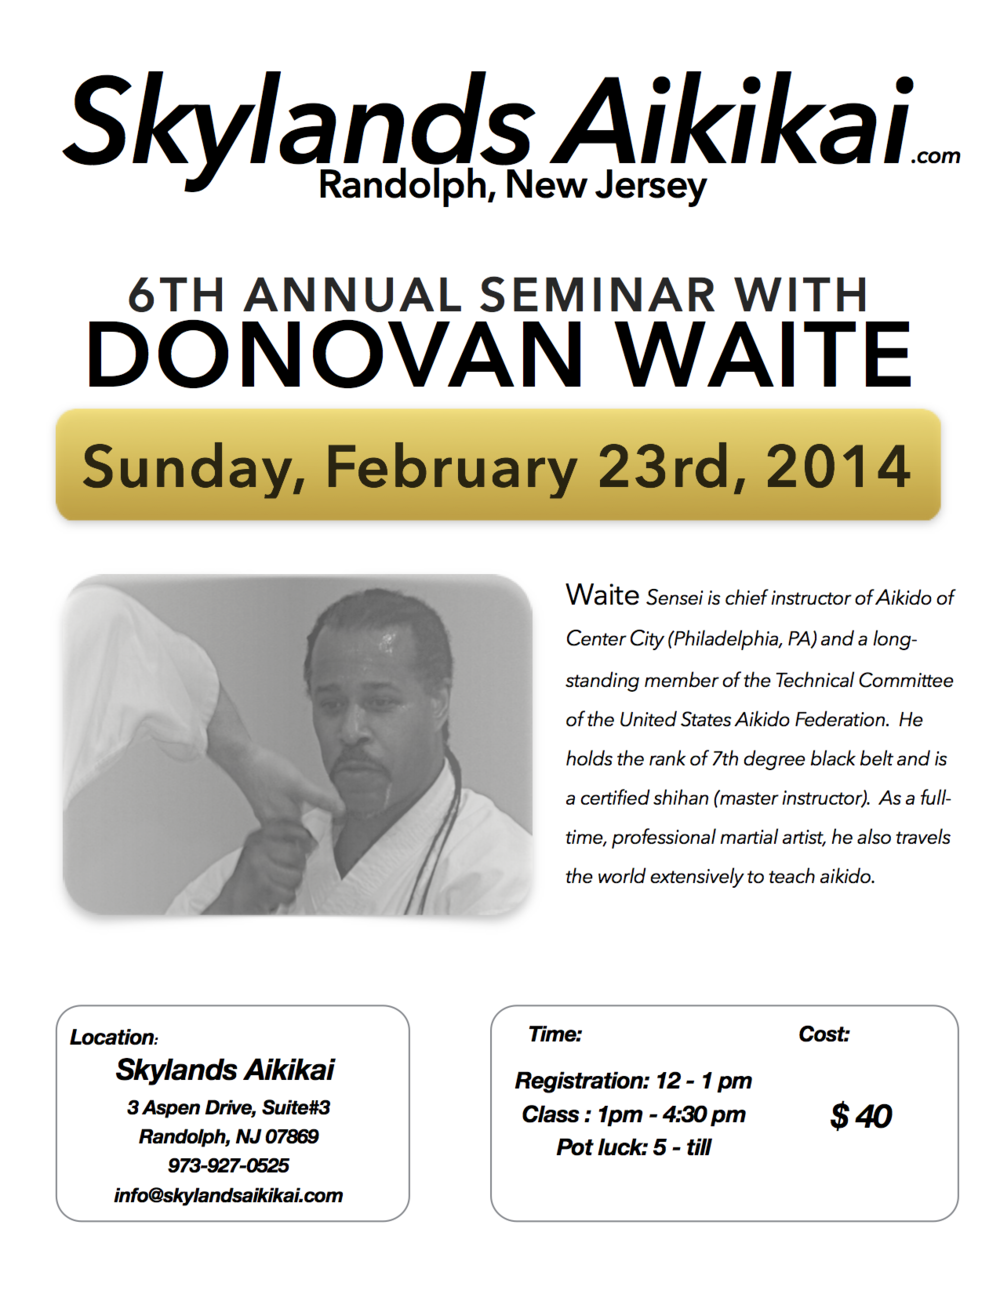 Waiteflyer2014.png